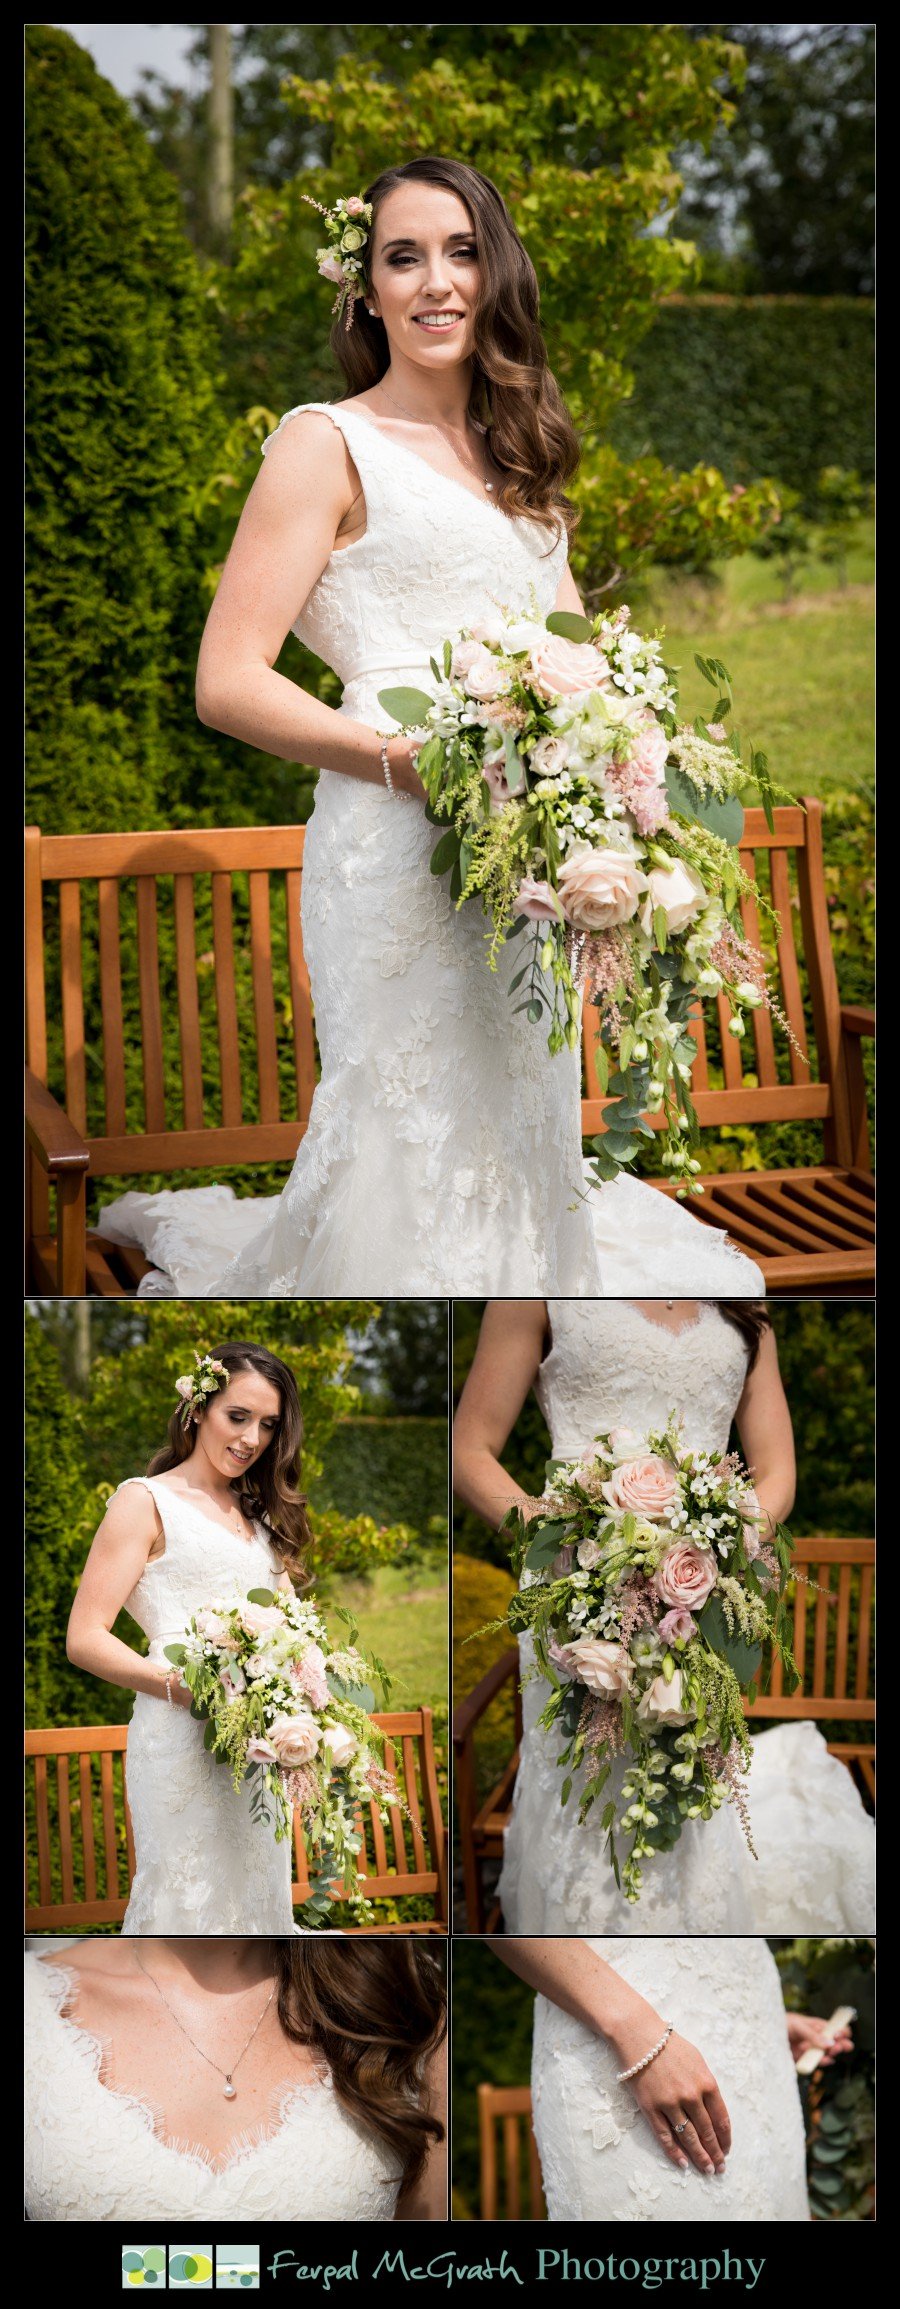 Castle Dargan Hotel Summer Wedding beautiful brides wedding bouquet